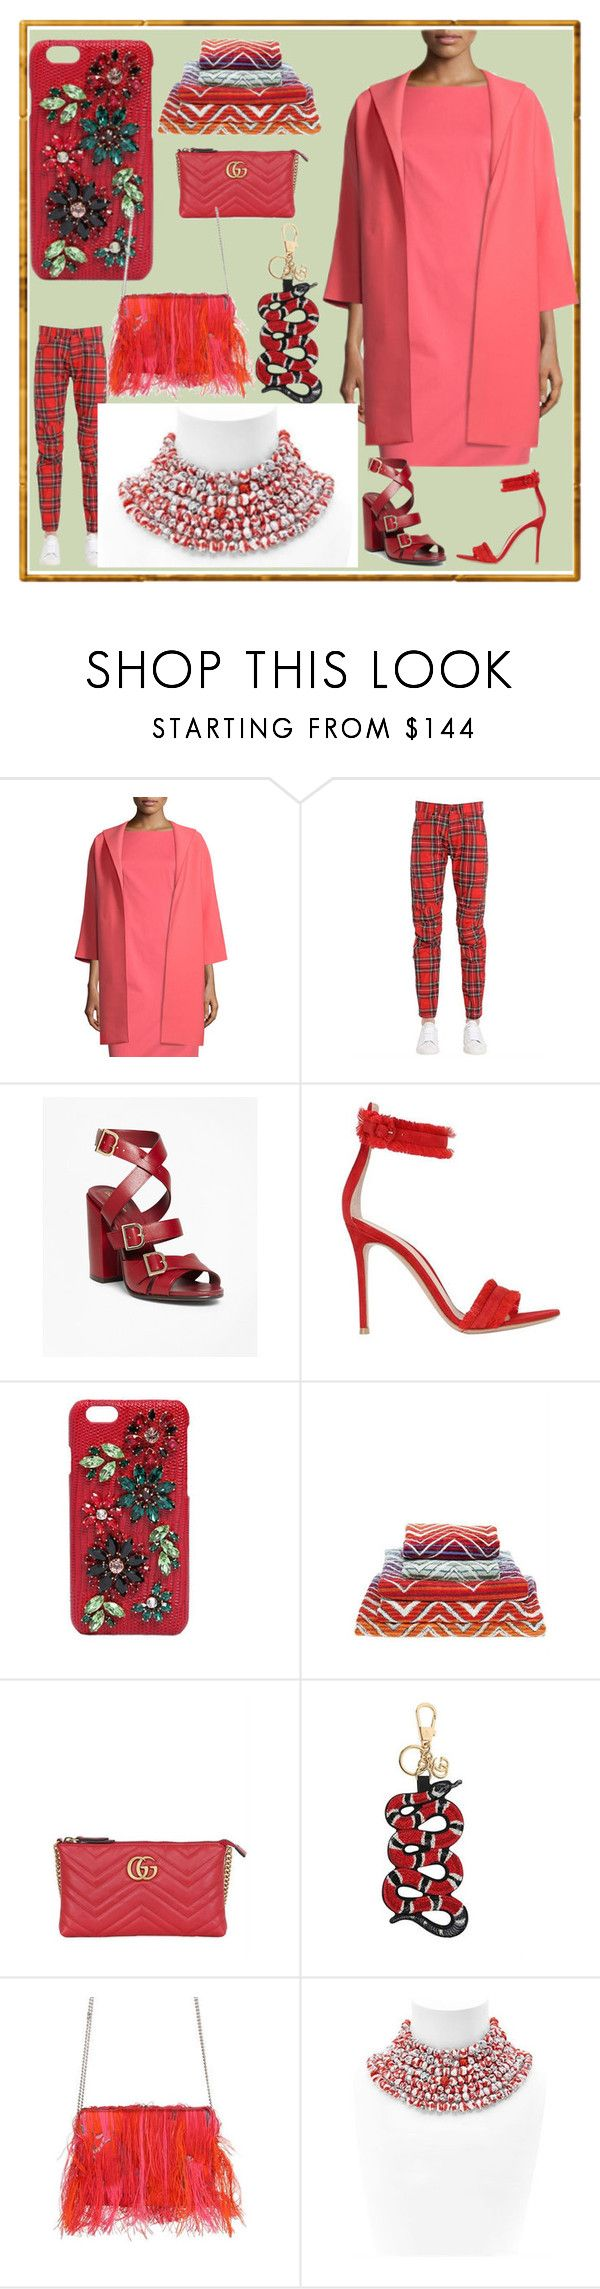 """""""fashion for alert"""" by denisee-denisee ❤ liked on Polyvore featuring Lafayette 148 New York, G-Star Raw, Brooks Brothers, Gianvito Rossi, Dolce&Gabbana, Missoni, Gucci, Gianluca Capannolo, Alice Visin and vintage"""